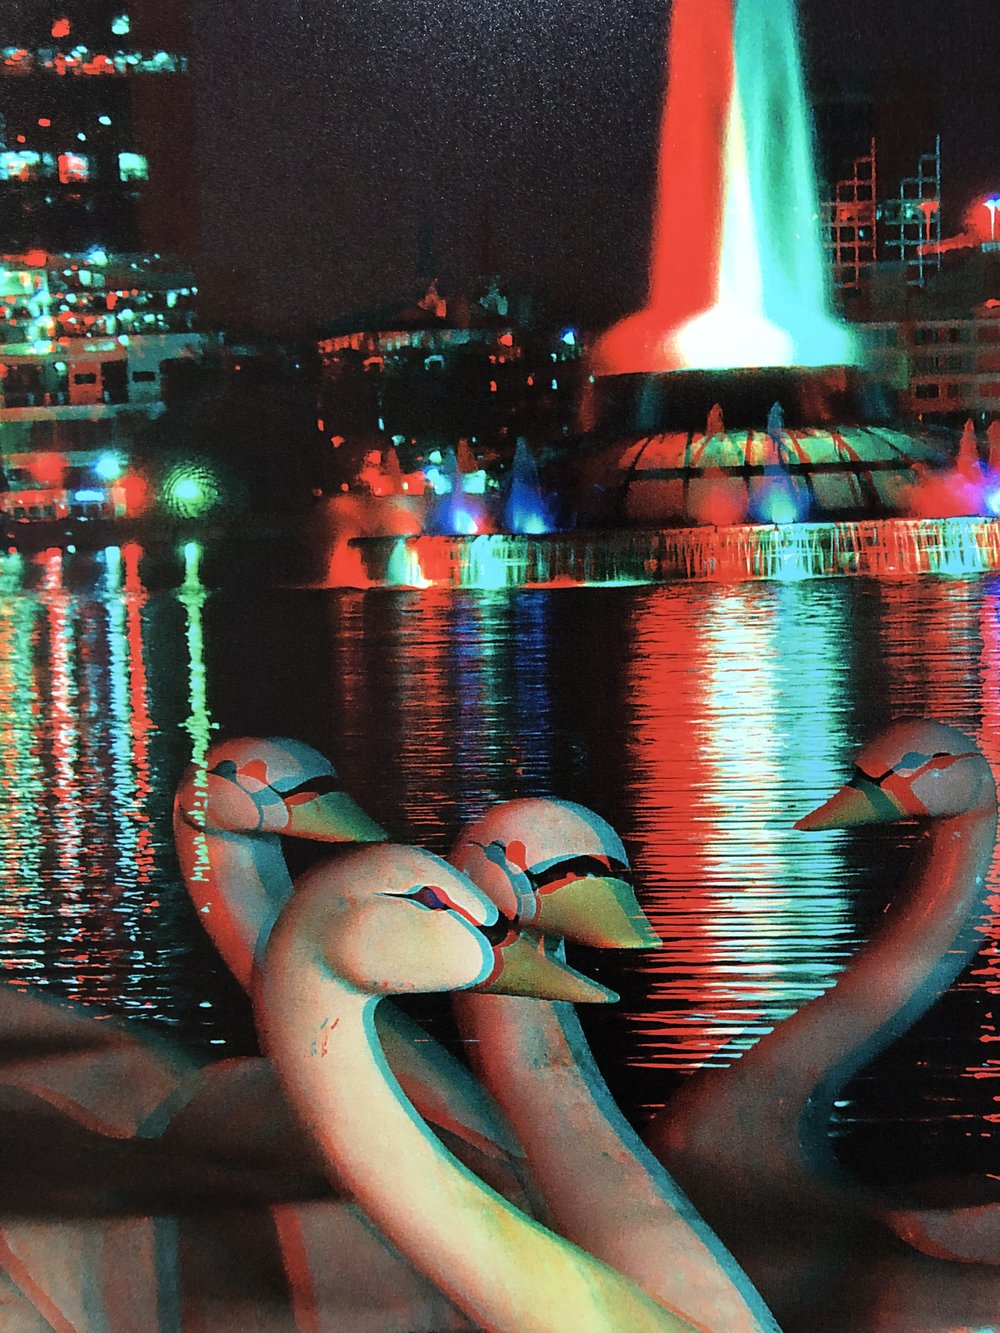 These swans don't bite. (Can I please just retitle this one?) Swan Boats Resting, 2010, Jim McManus